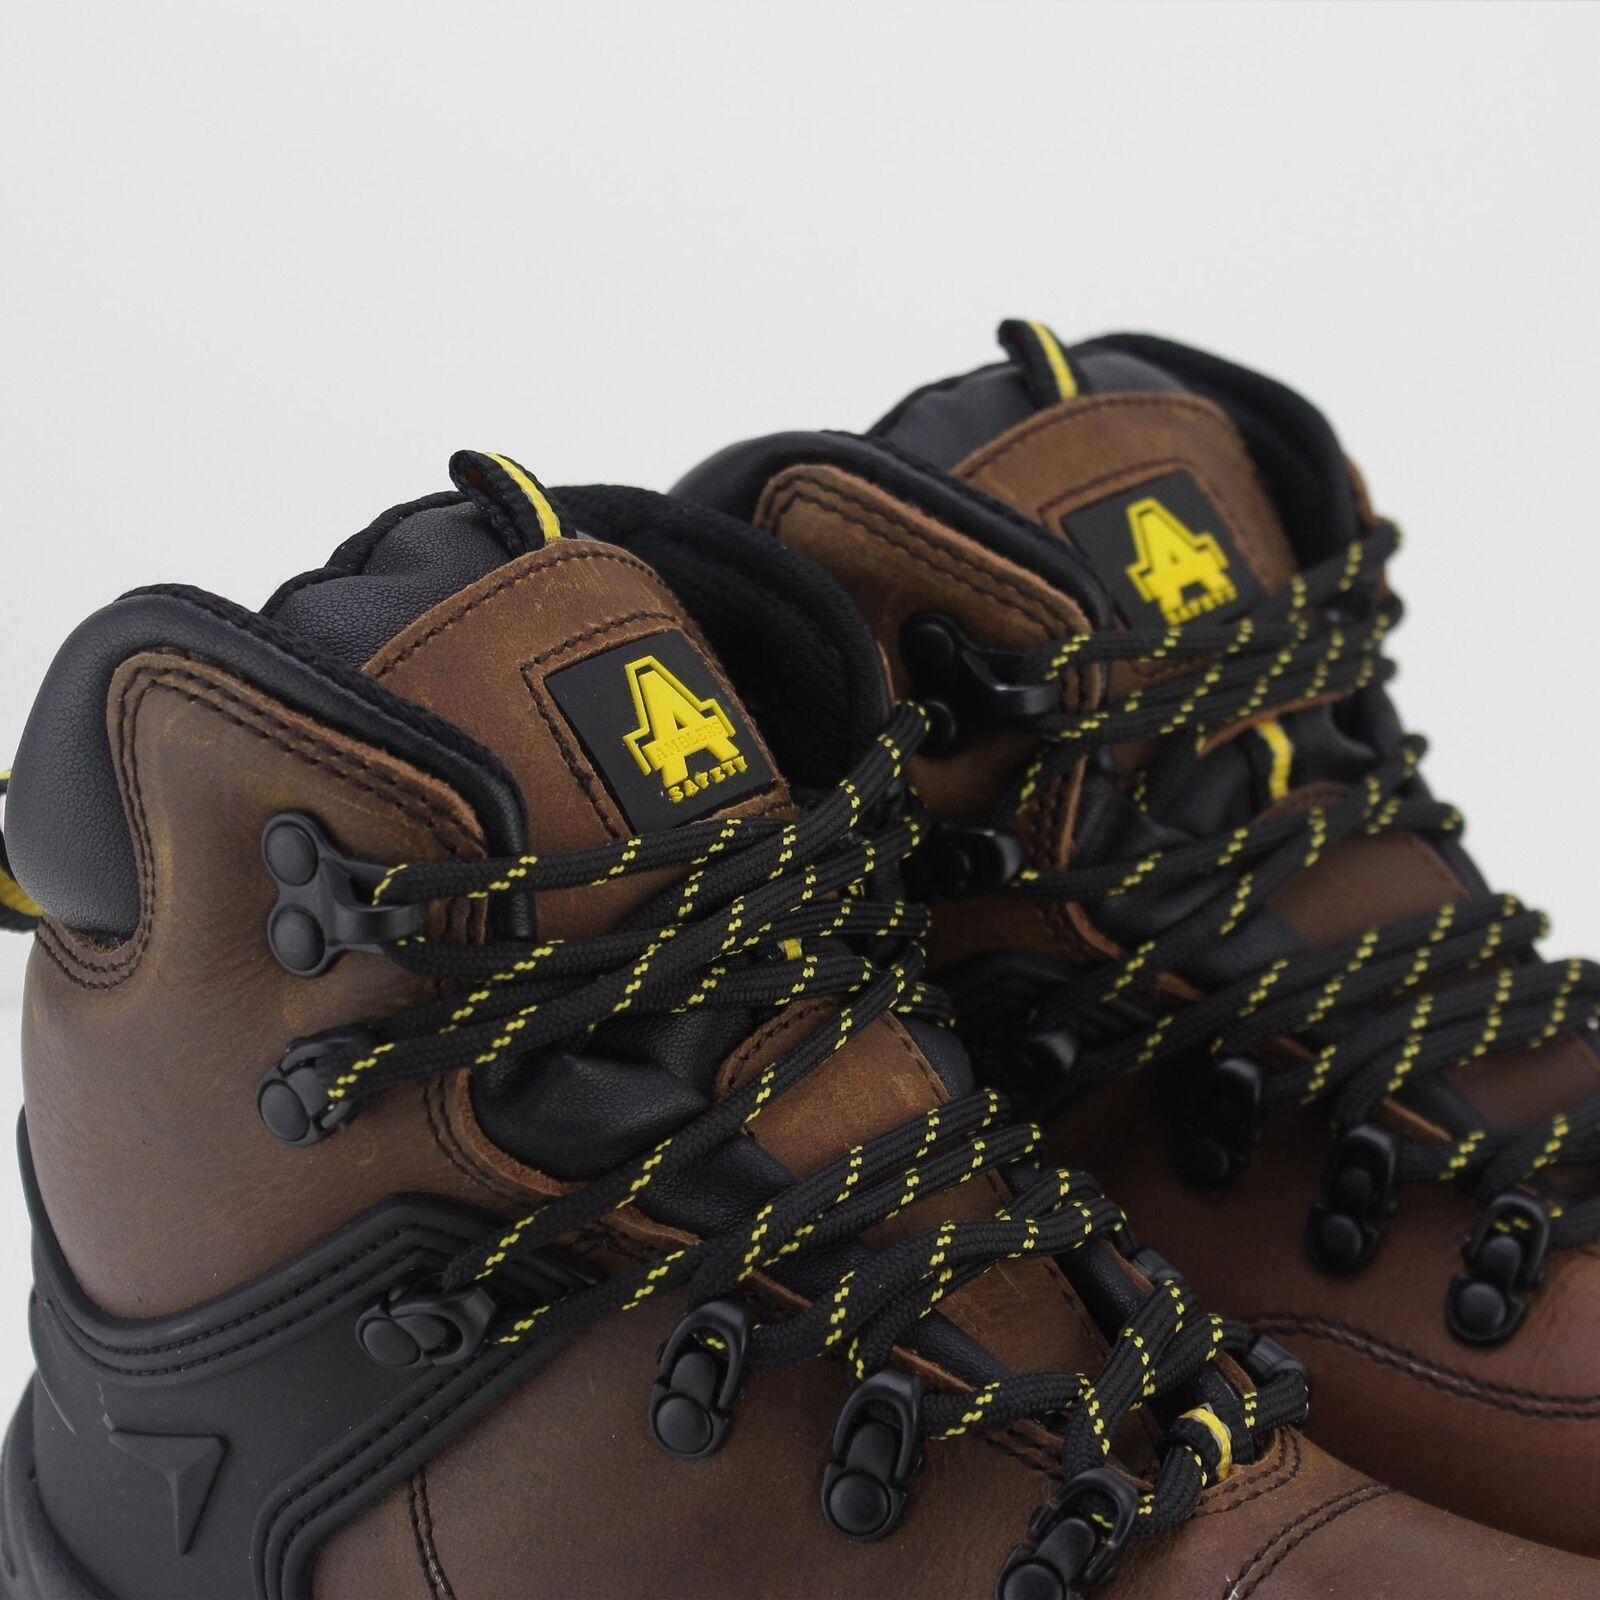 Amblers Safety FS197 S3 Unisex Mens Womens Leather S3 FS197 Steel Toe Safety Boots Brown 54f148